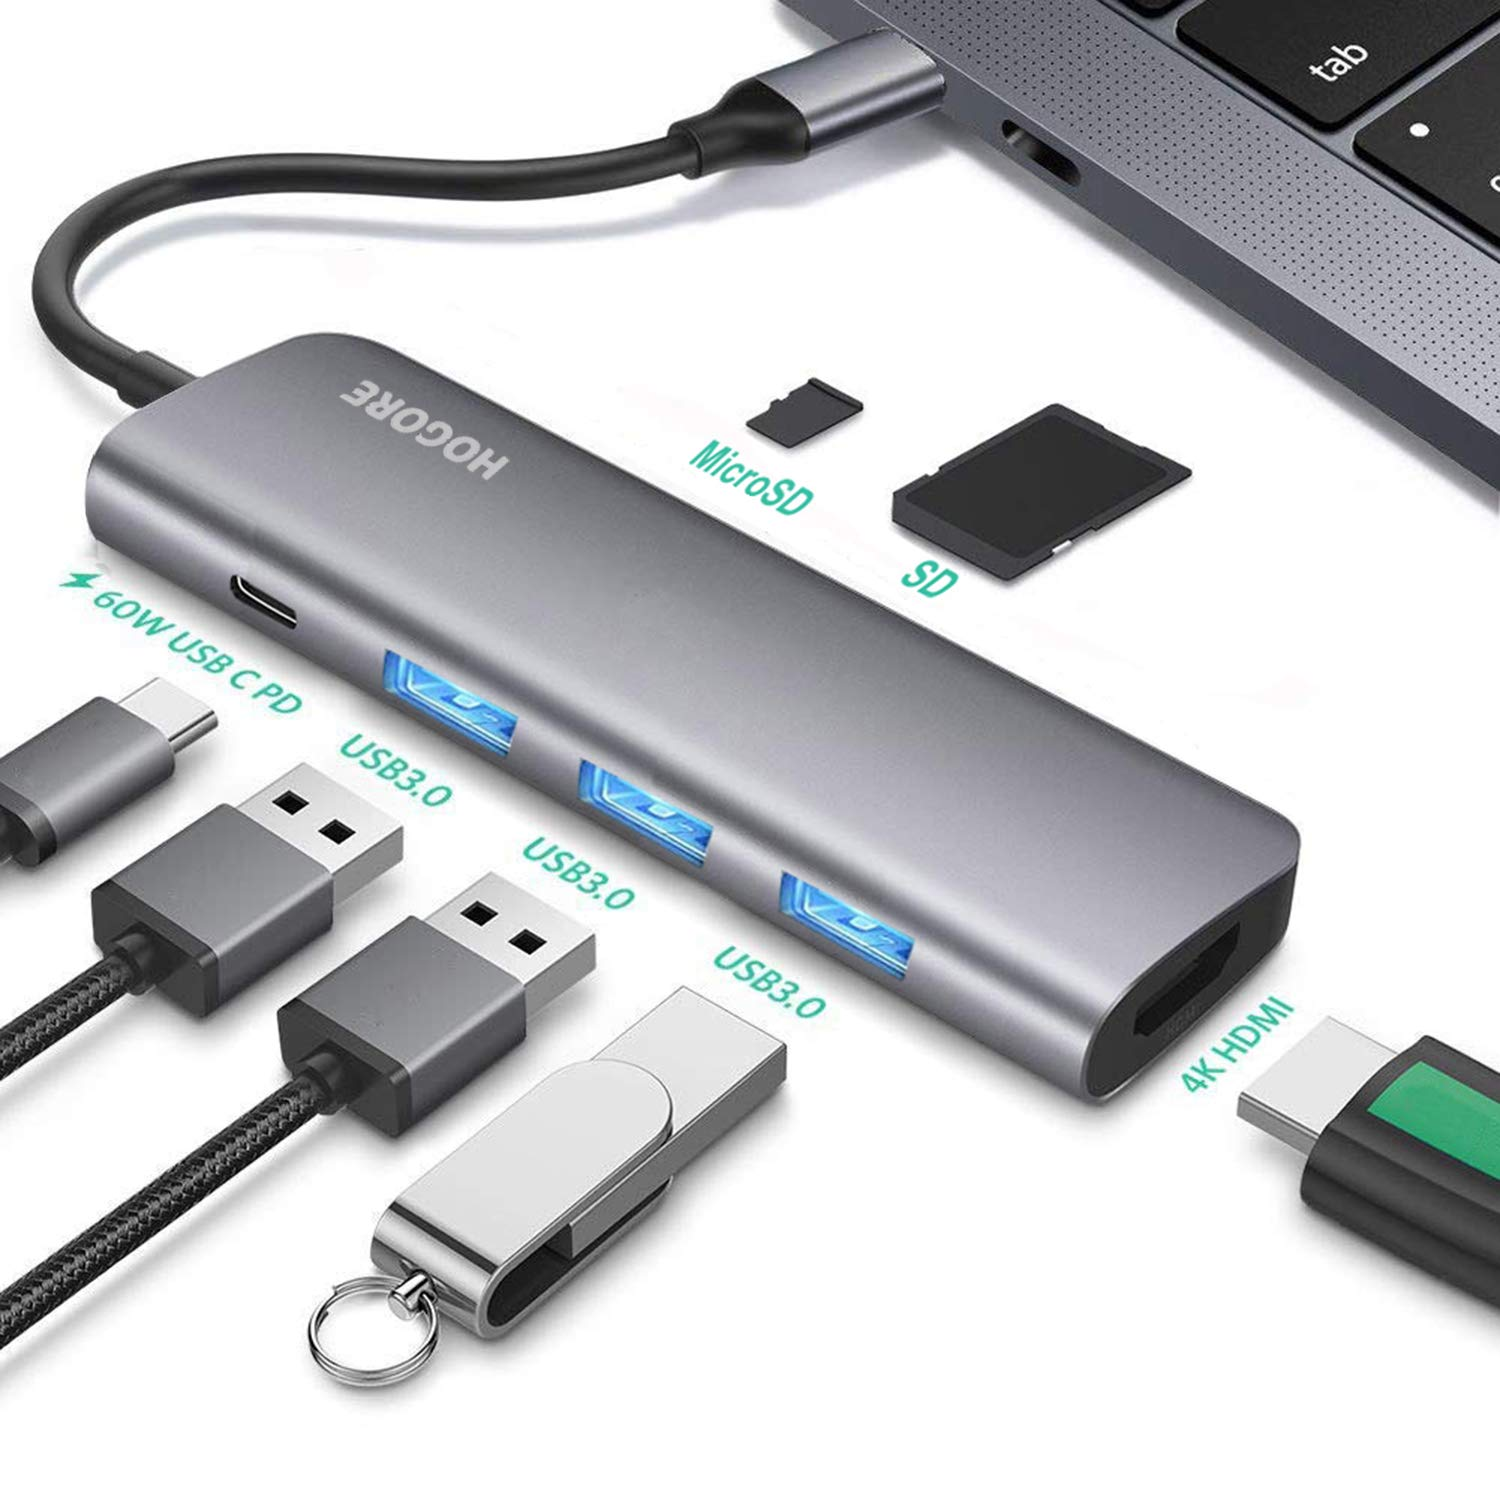 USB C Hub HDMI, HOGORE 7-in-1 USB Type C Multi-port Adapter Dongle with 4K HDMI, 60W PD Charging,3 USB 3.0 Ports,SD/Micro,Compatible with MacBook,HP Spectre,Dell XPS, Lenovo Yoga,ChromeBook,Surface Go by HOGORE